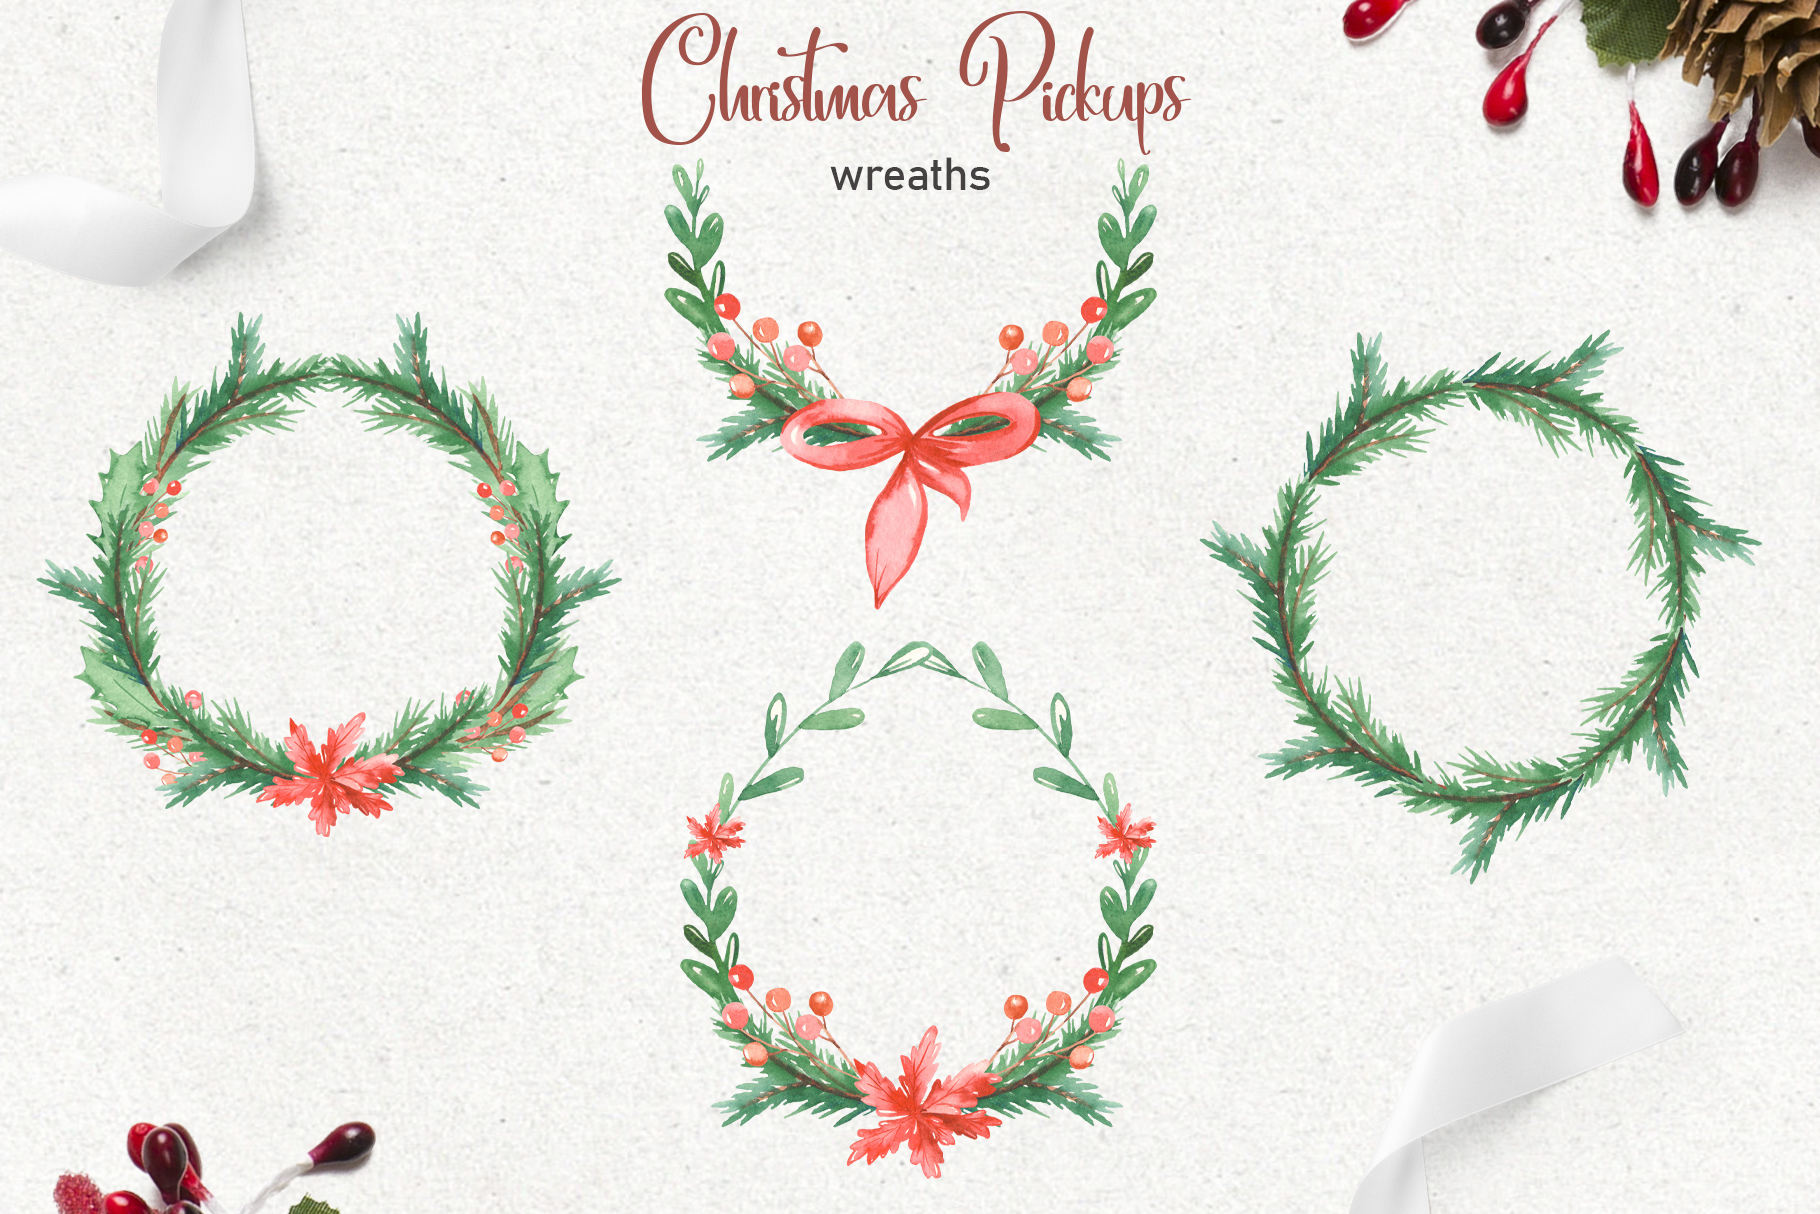 Christmas pickup Watercolor clipart and Christmas elements example image 5